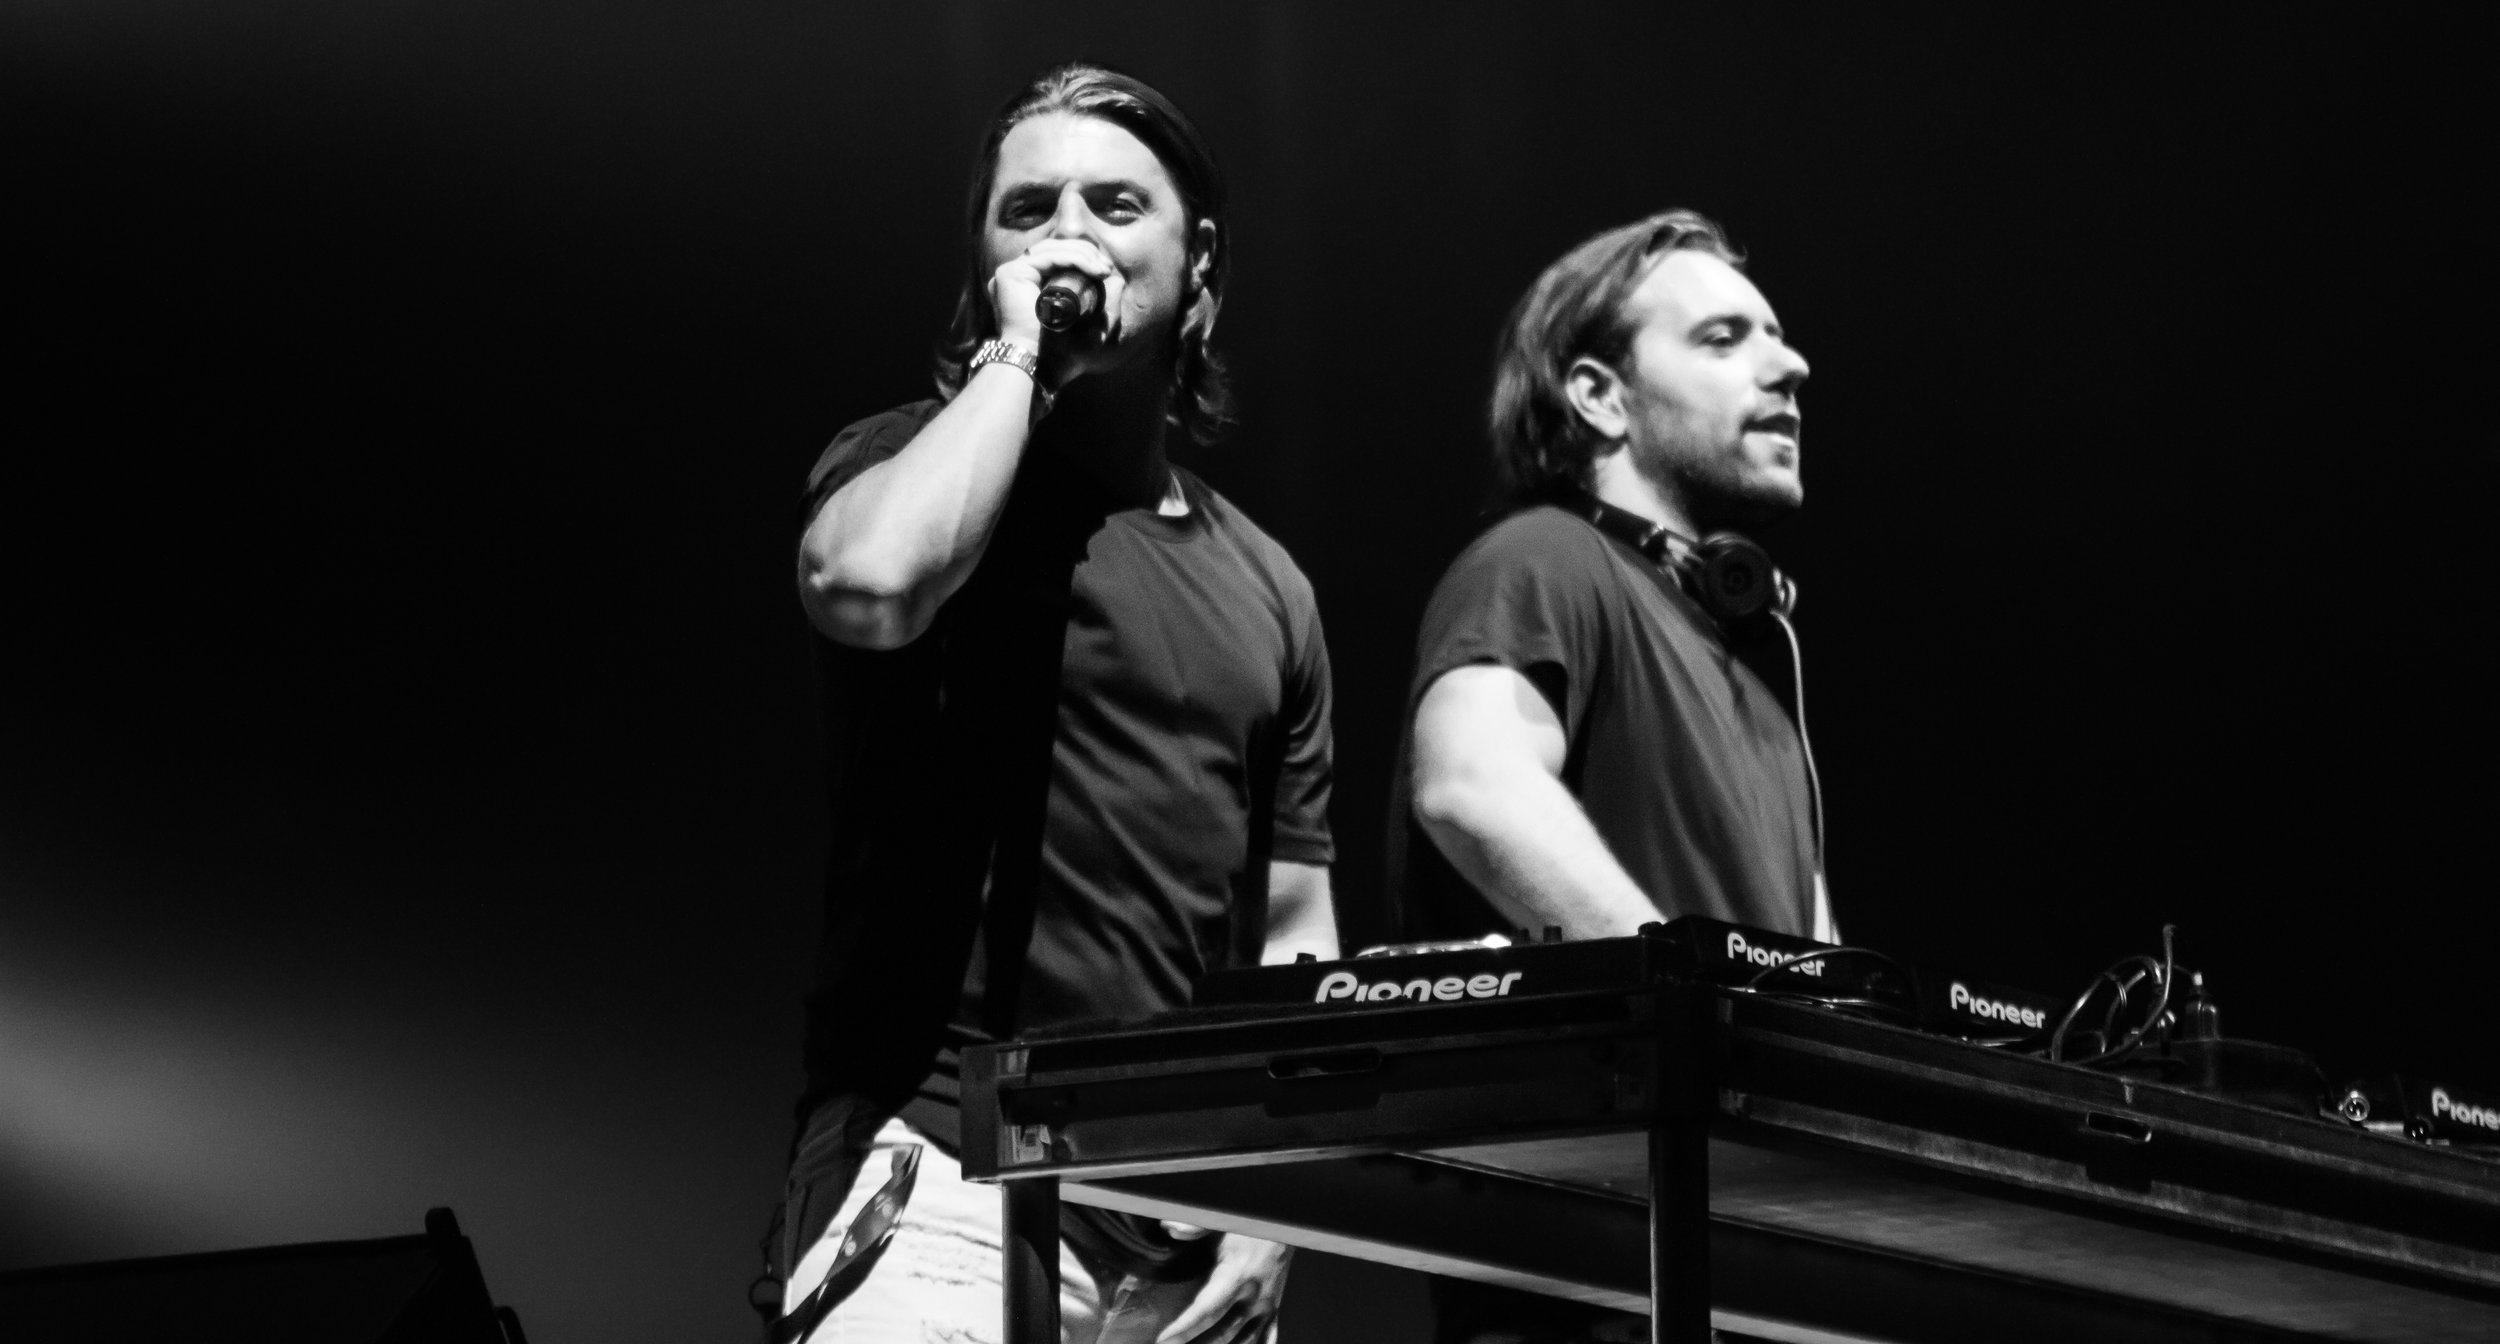 Axwell /\ Ingrosso - Made In America 2015